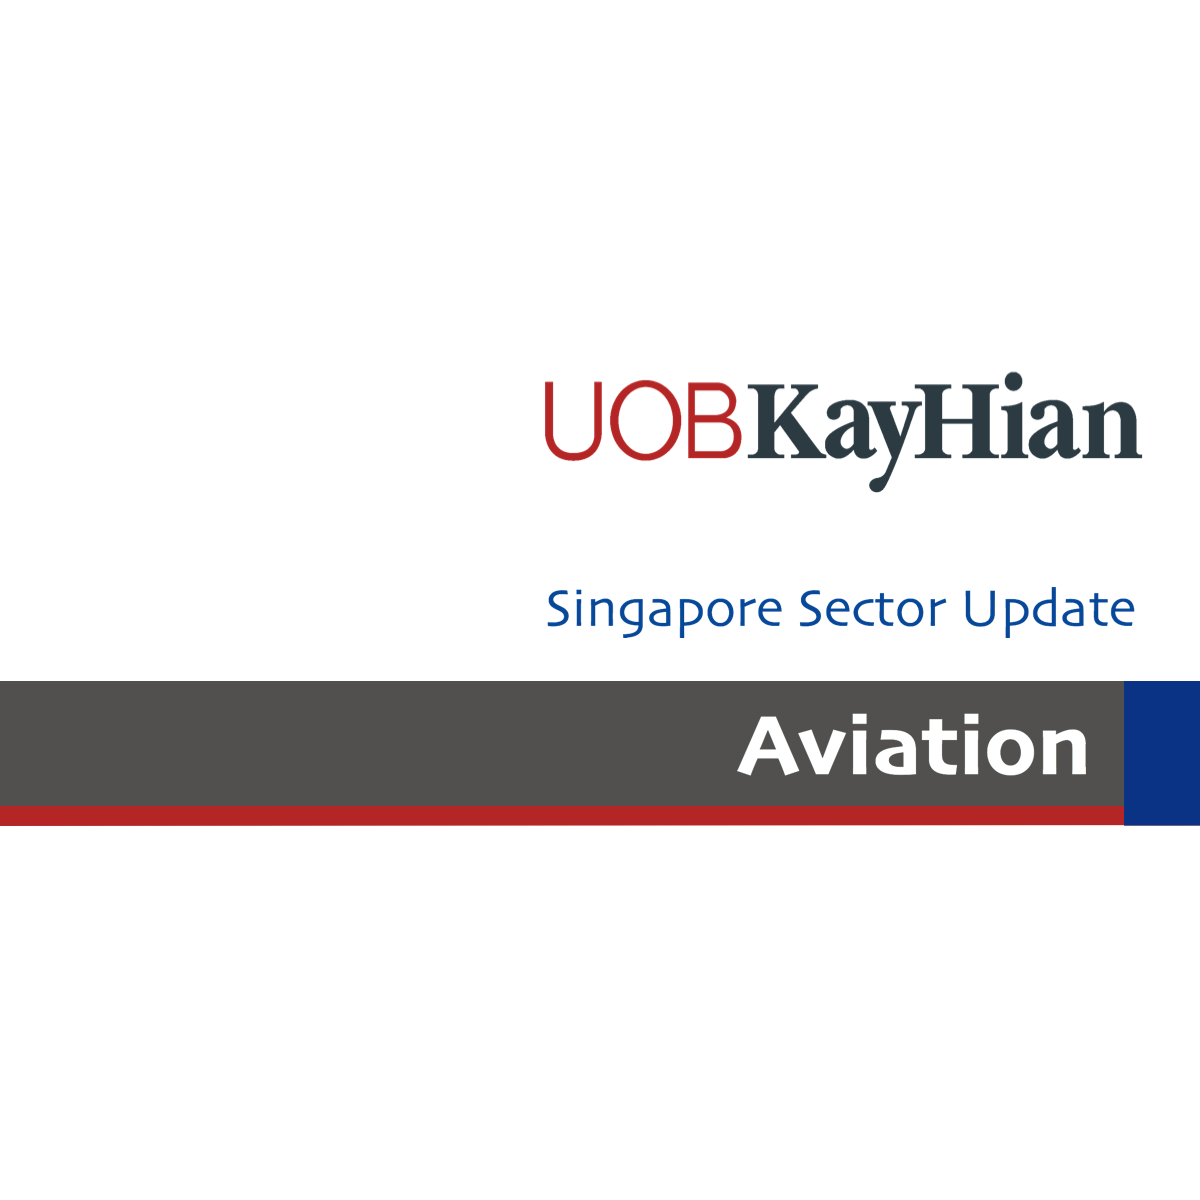 Aviation – Singapore - UOB Kay Hian 2017-06-06: SIAEC's Share Buybacks Likely To Support Share Price But Industry Faces Macro Headwinds